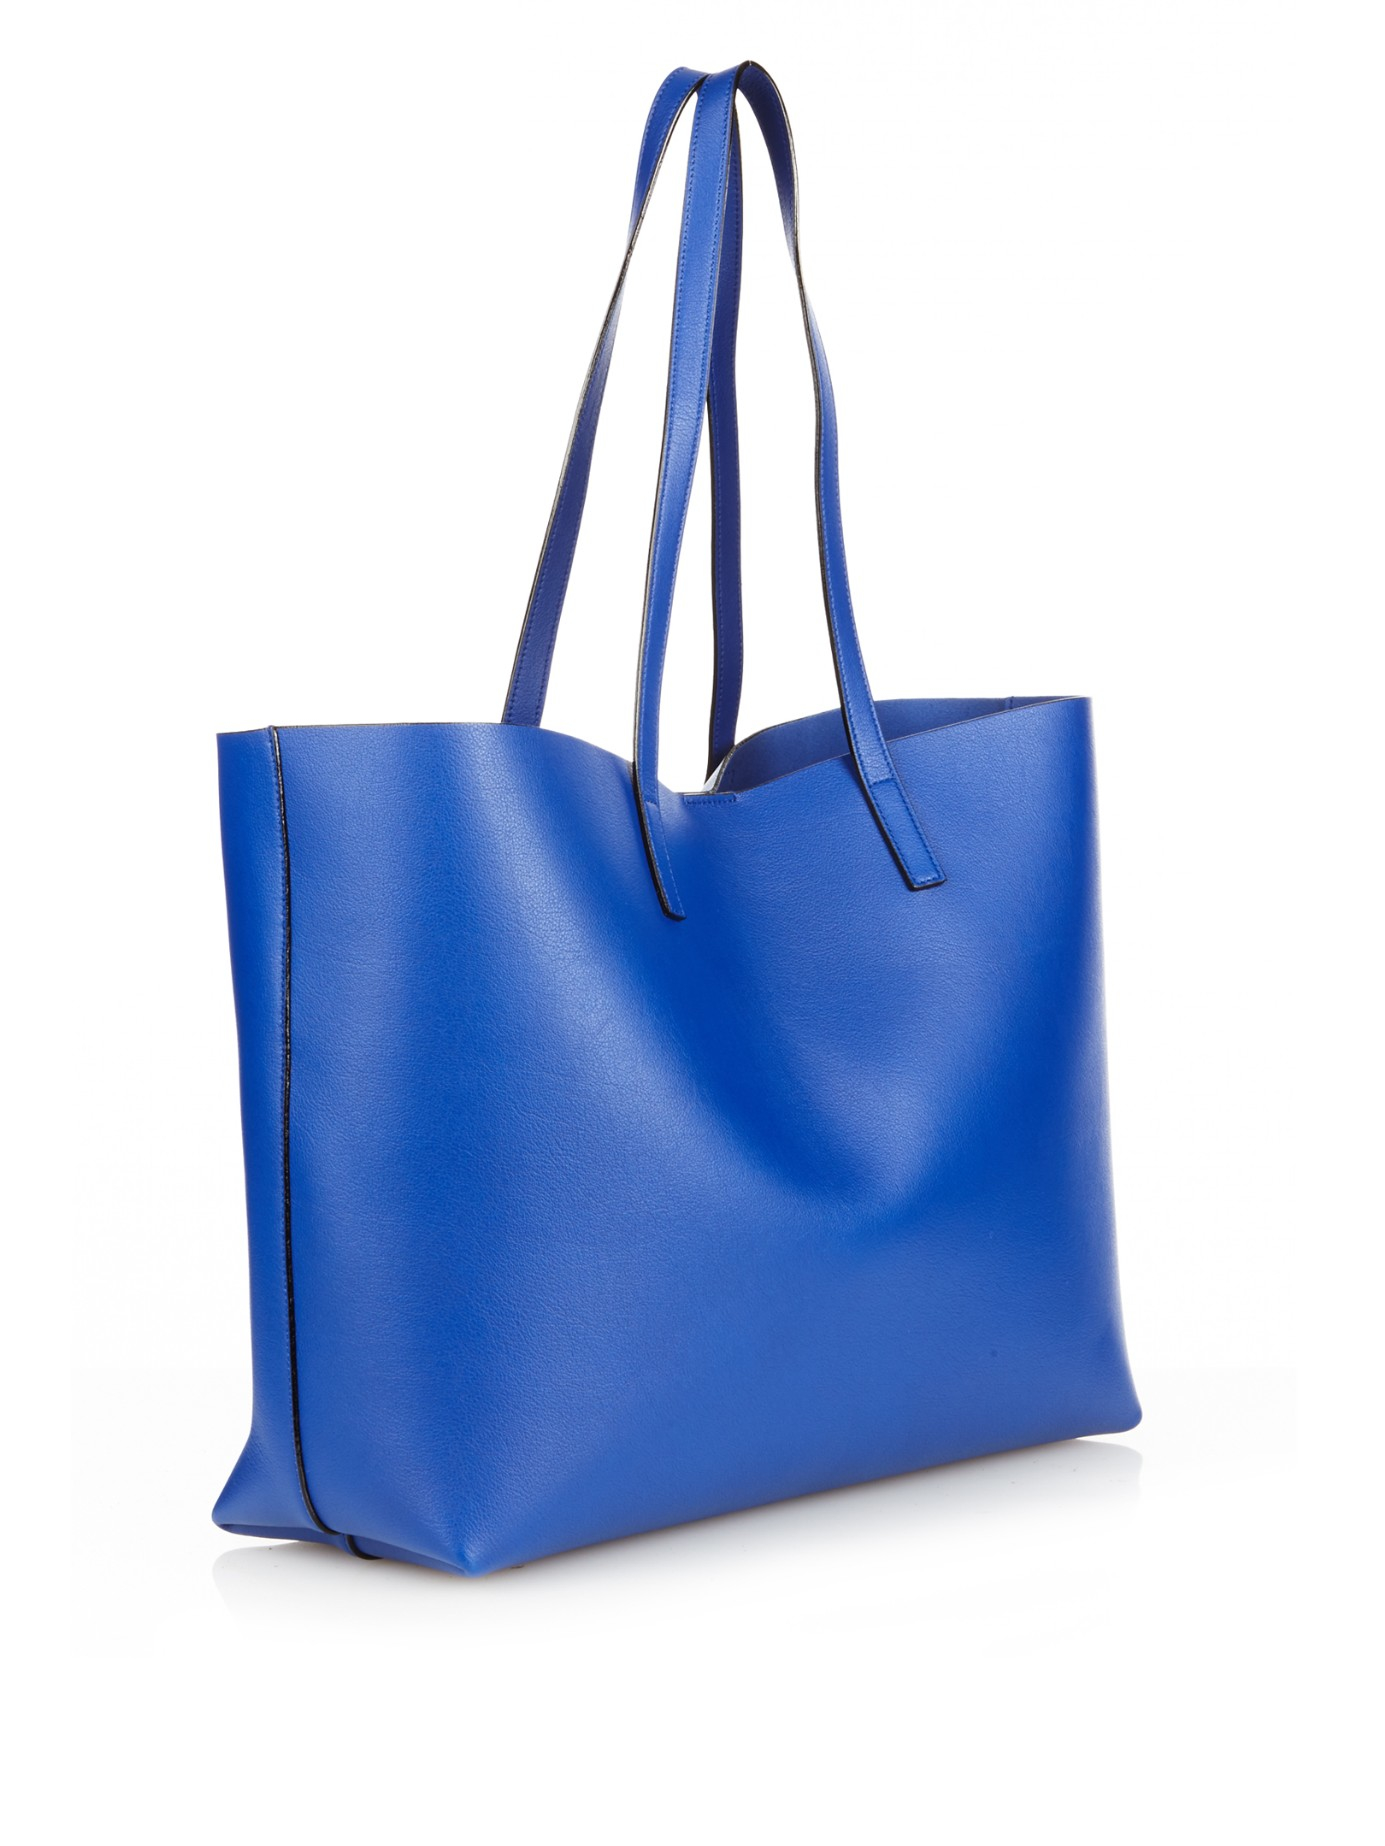 Online leather bag shopping